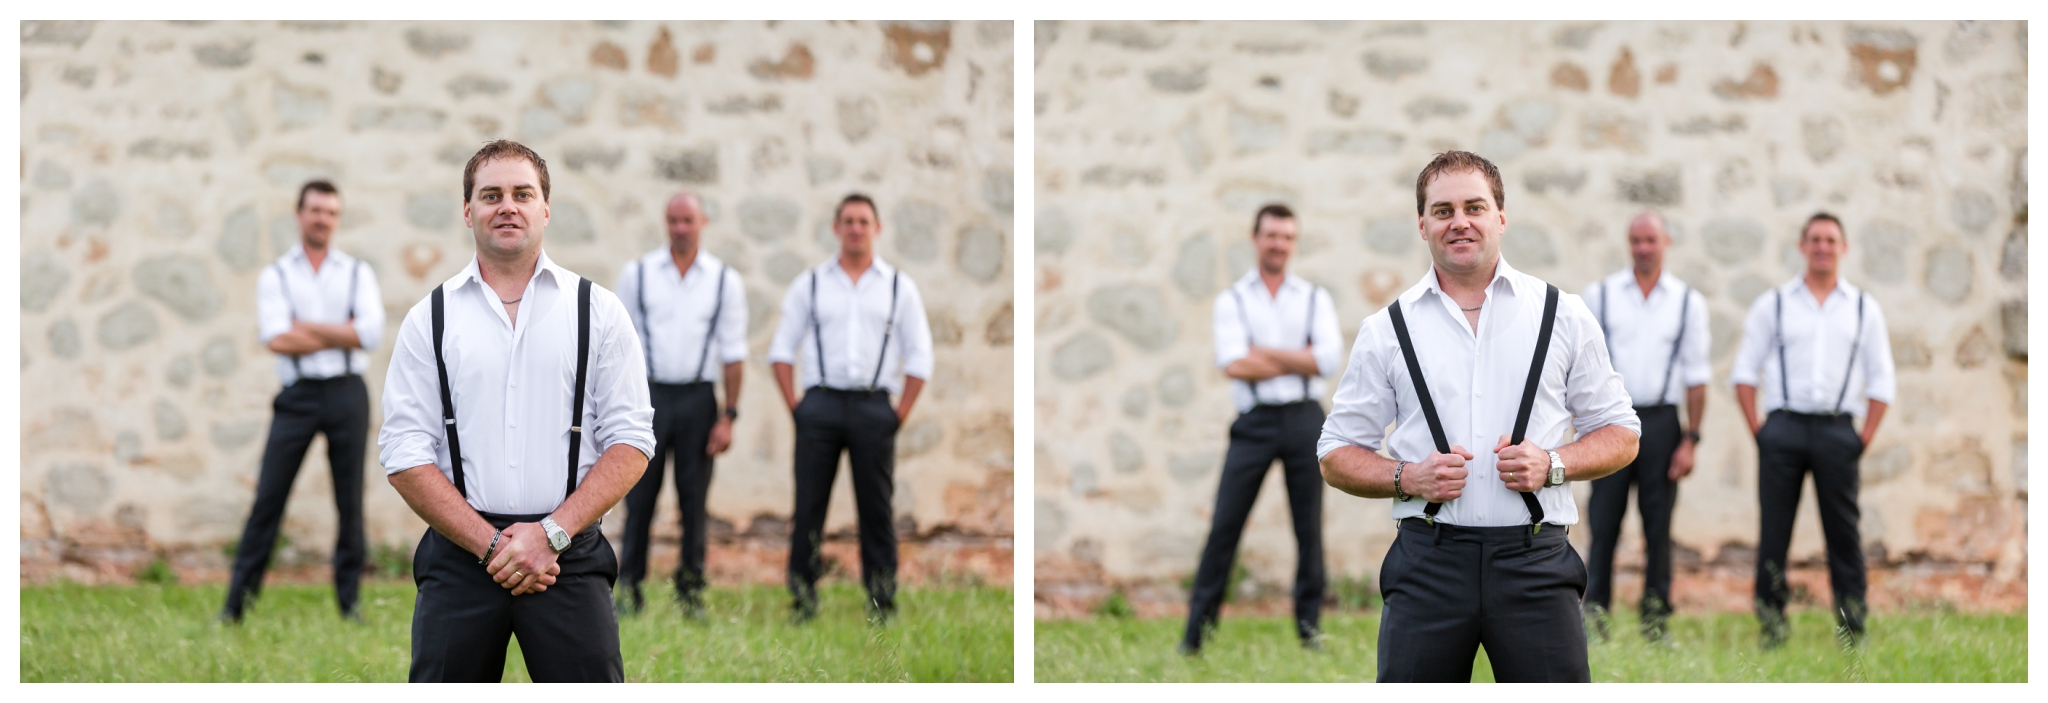 Groom and Groomsmen Mandurah Wedding